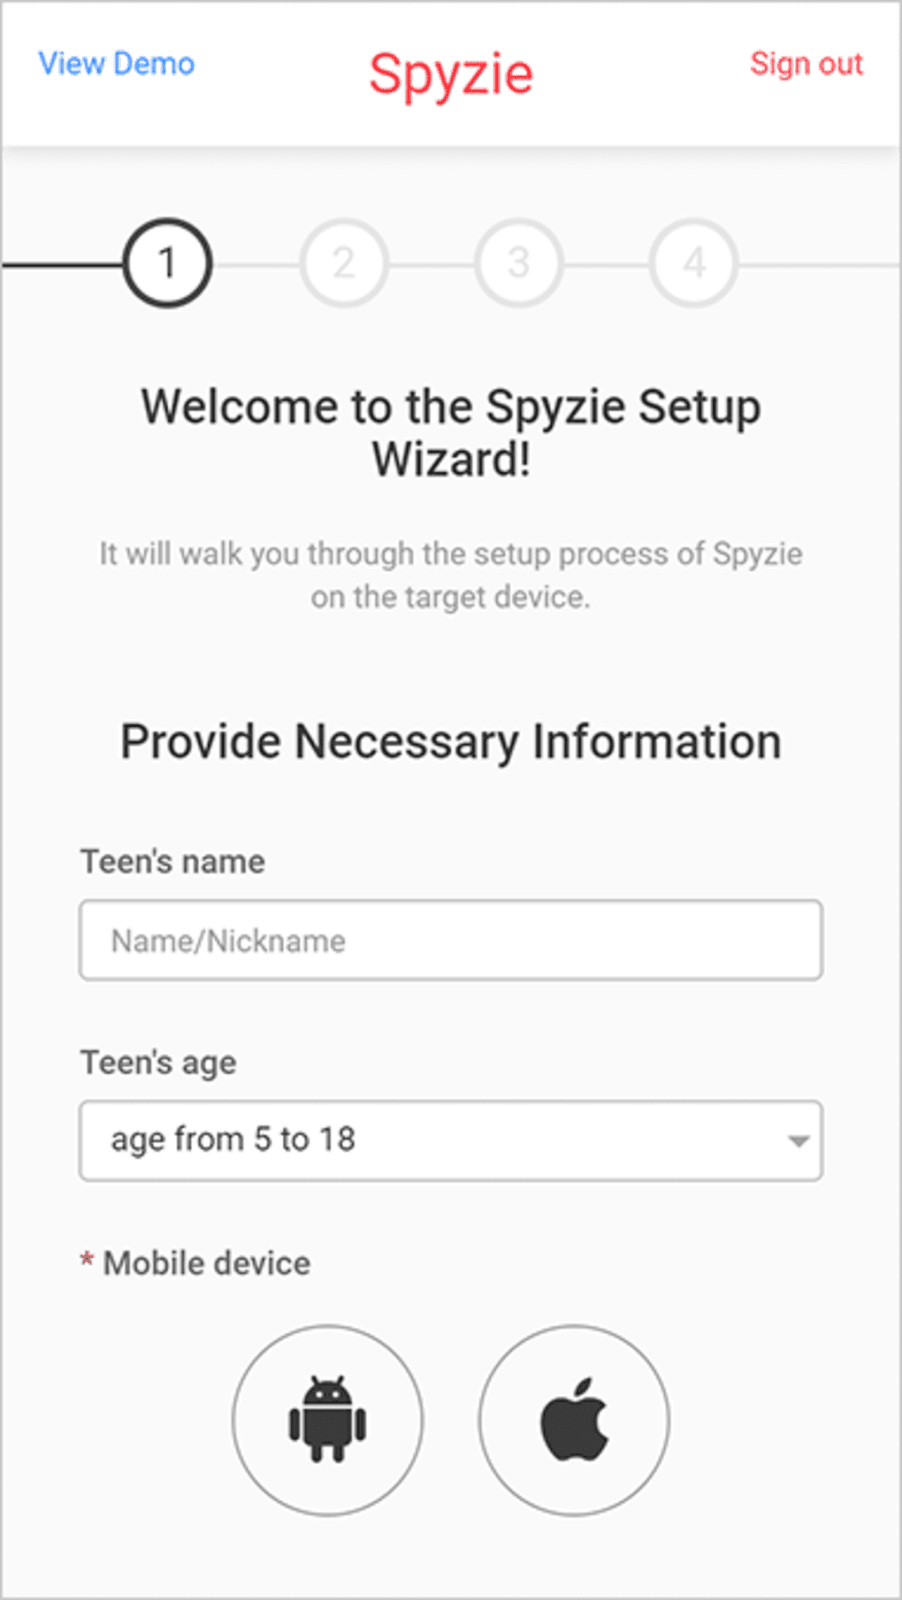 C:\Users\DELL\Downloads\spyzie-android-setup-step-1.png